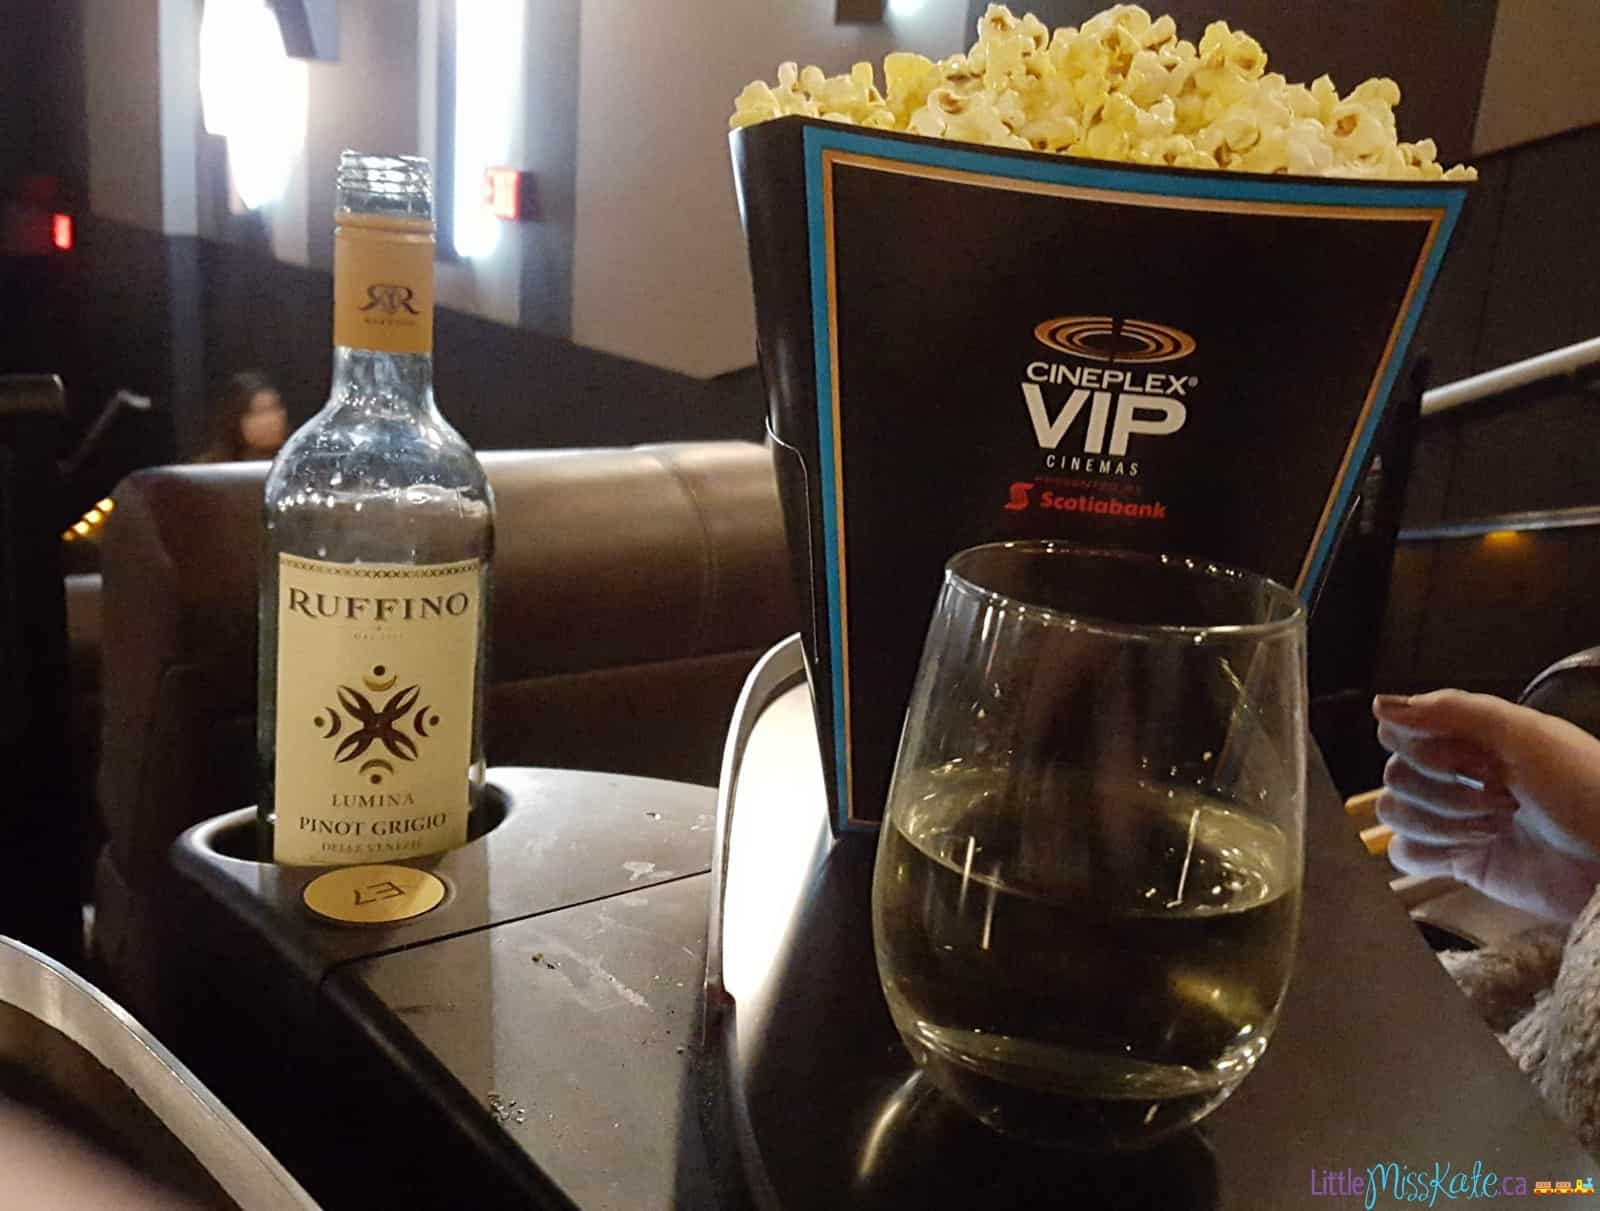 Cineplex VIP Movie Yonge Dundas